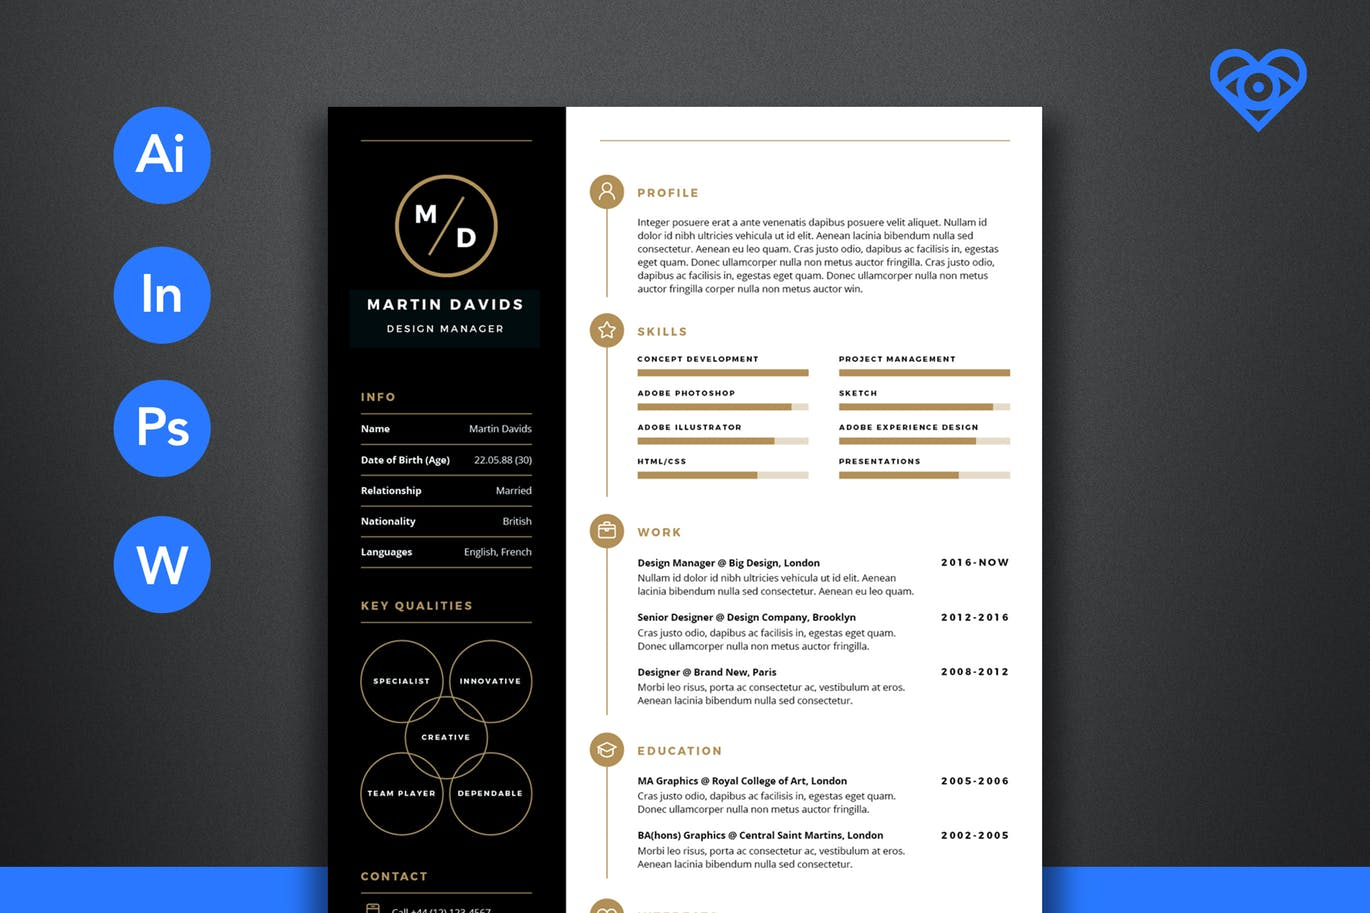 50+ Best CV & Resume Templates of 2019 | Design Shack